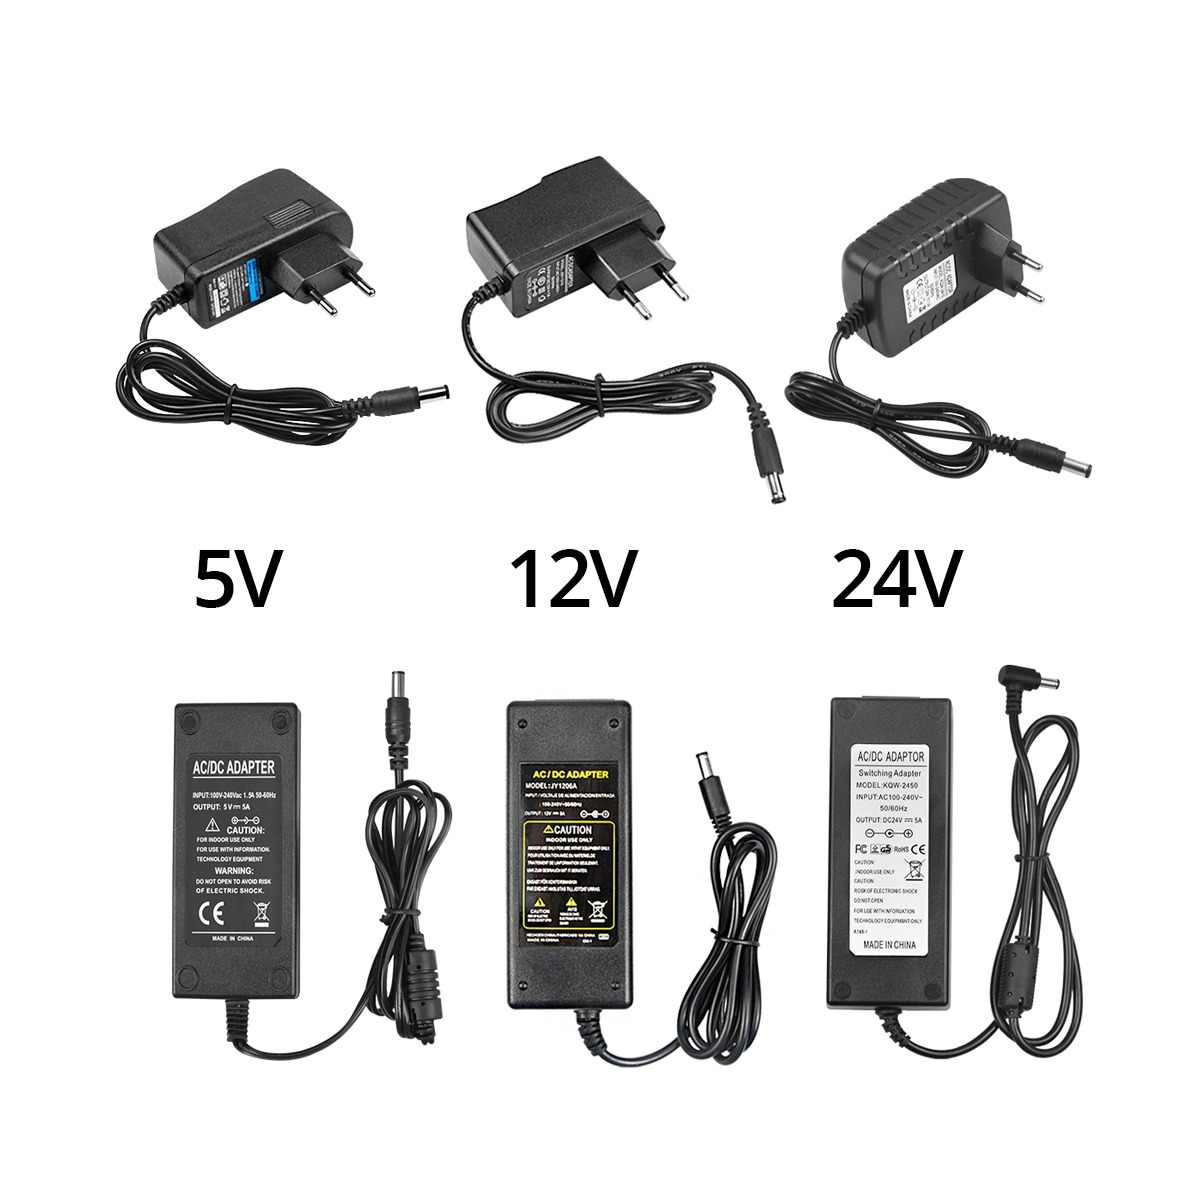 100-240V AC to DC Power Adapter Universal Switching DC 5V 9V 12V 1A 2A 3A Charger Supply Adaptor 5.5mm x 2.1mm for LED Strip